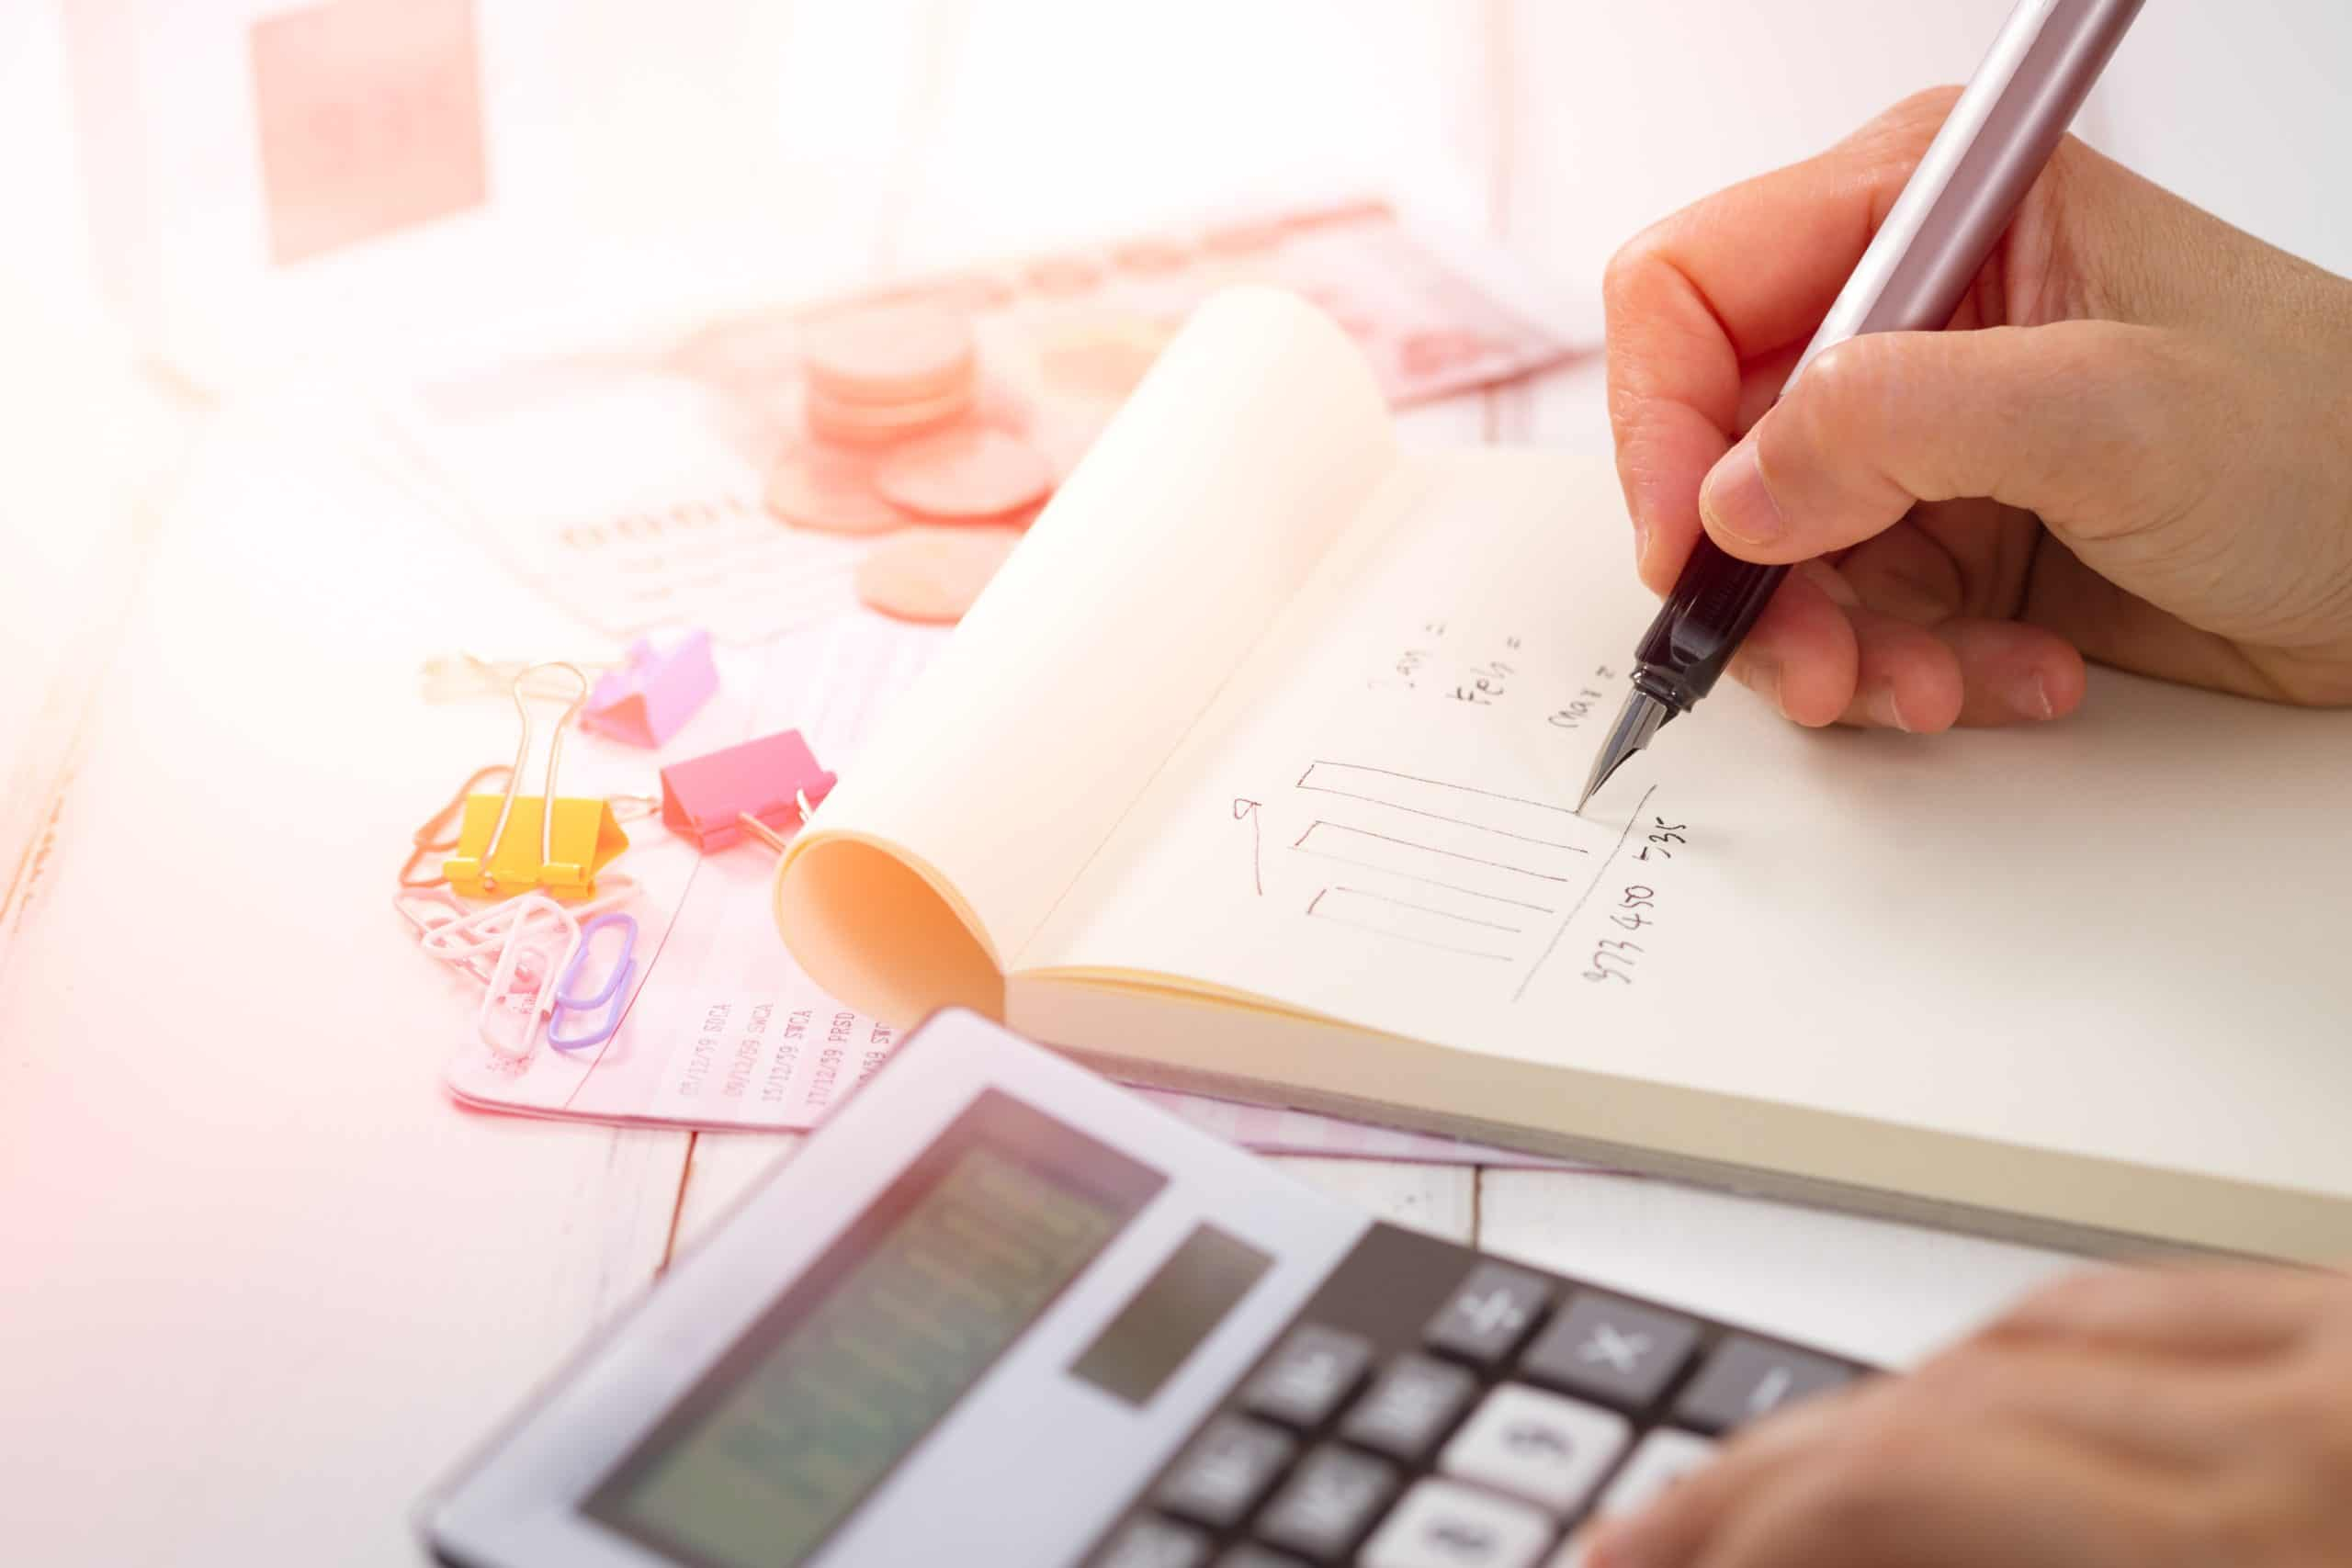 Learning money savings tips can really help your finances